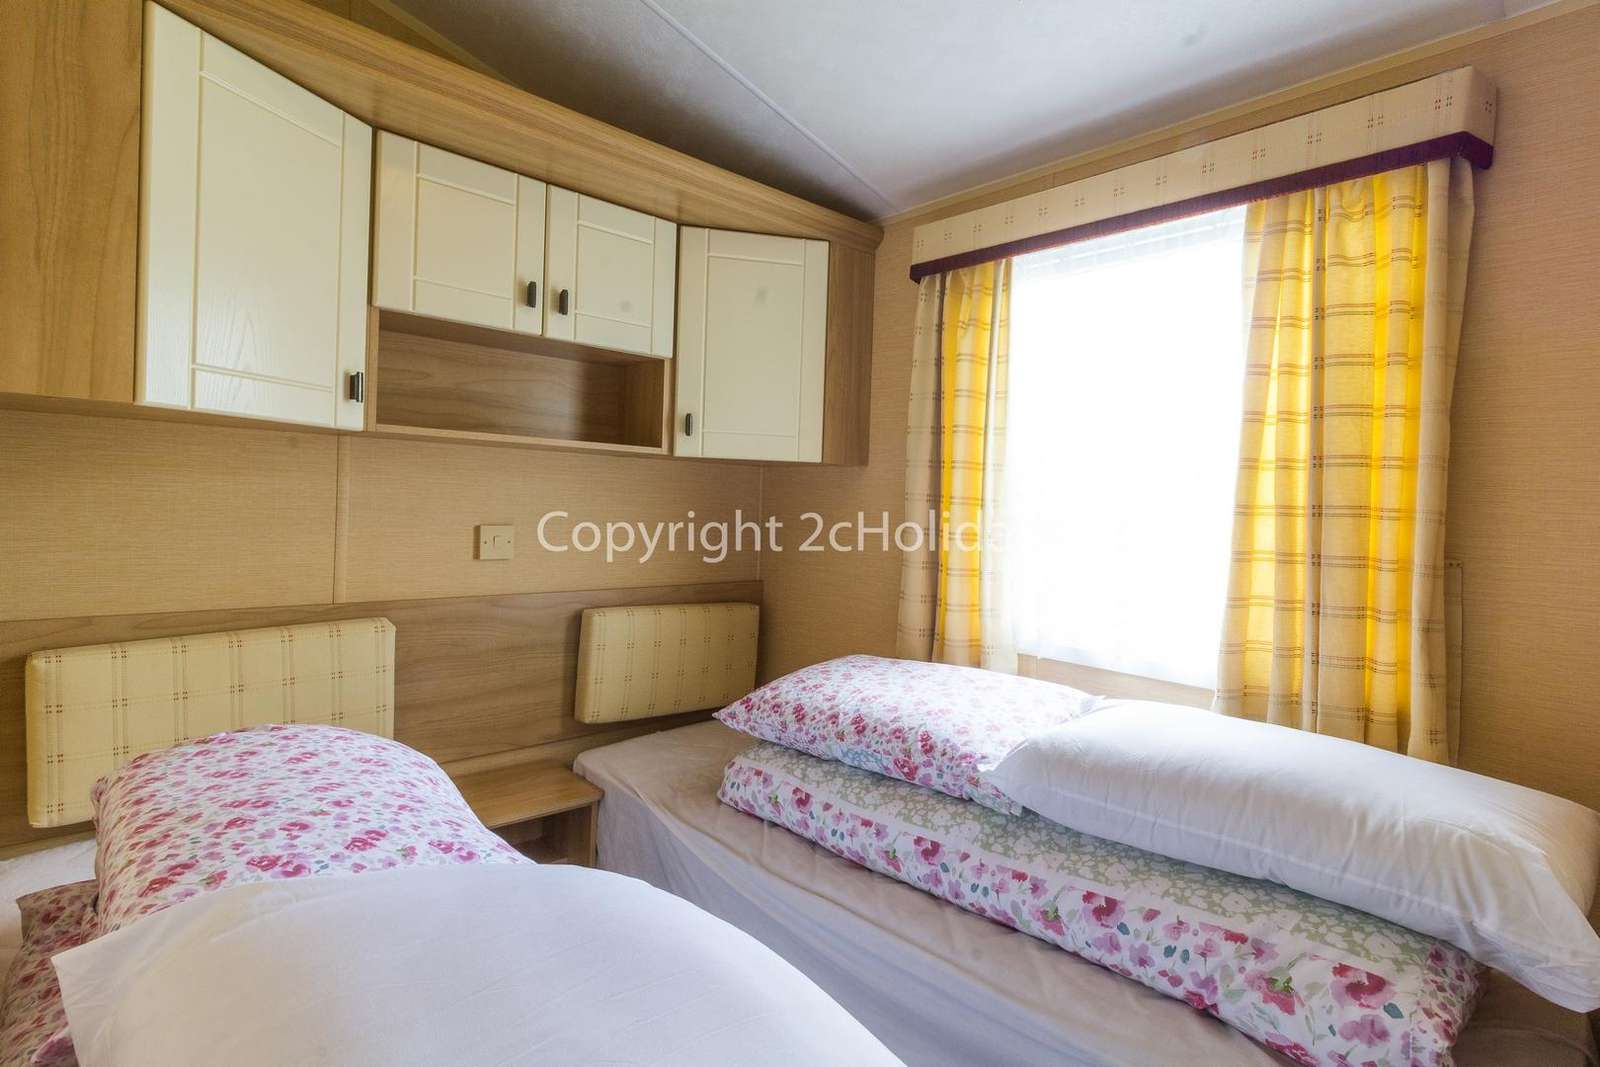 Plenty of storage in these modern twin bedrooms!